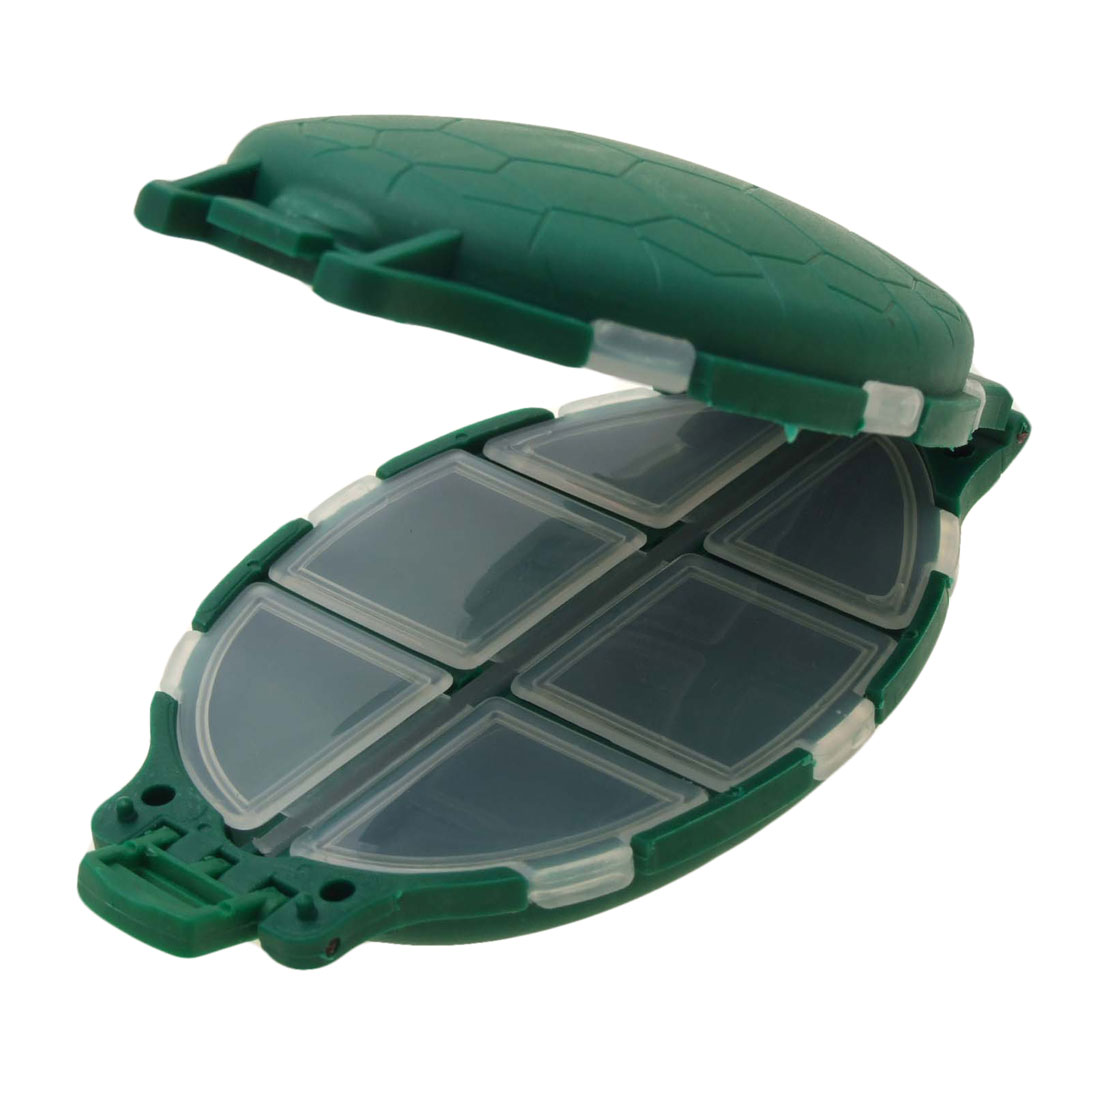 Green Portable Plastic Turtle Shaped Fishing Tackle Box